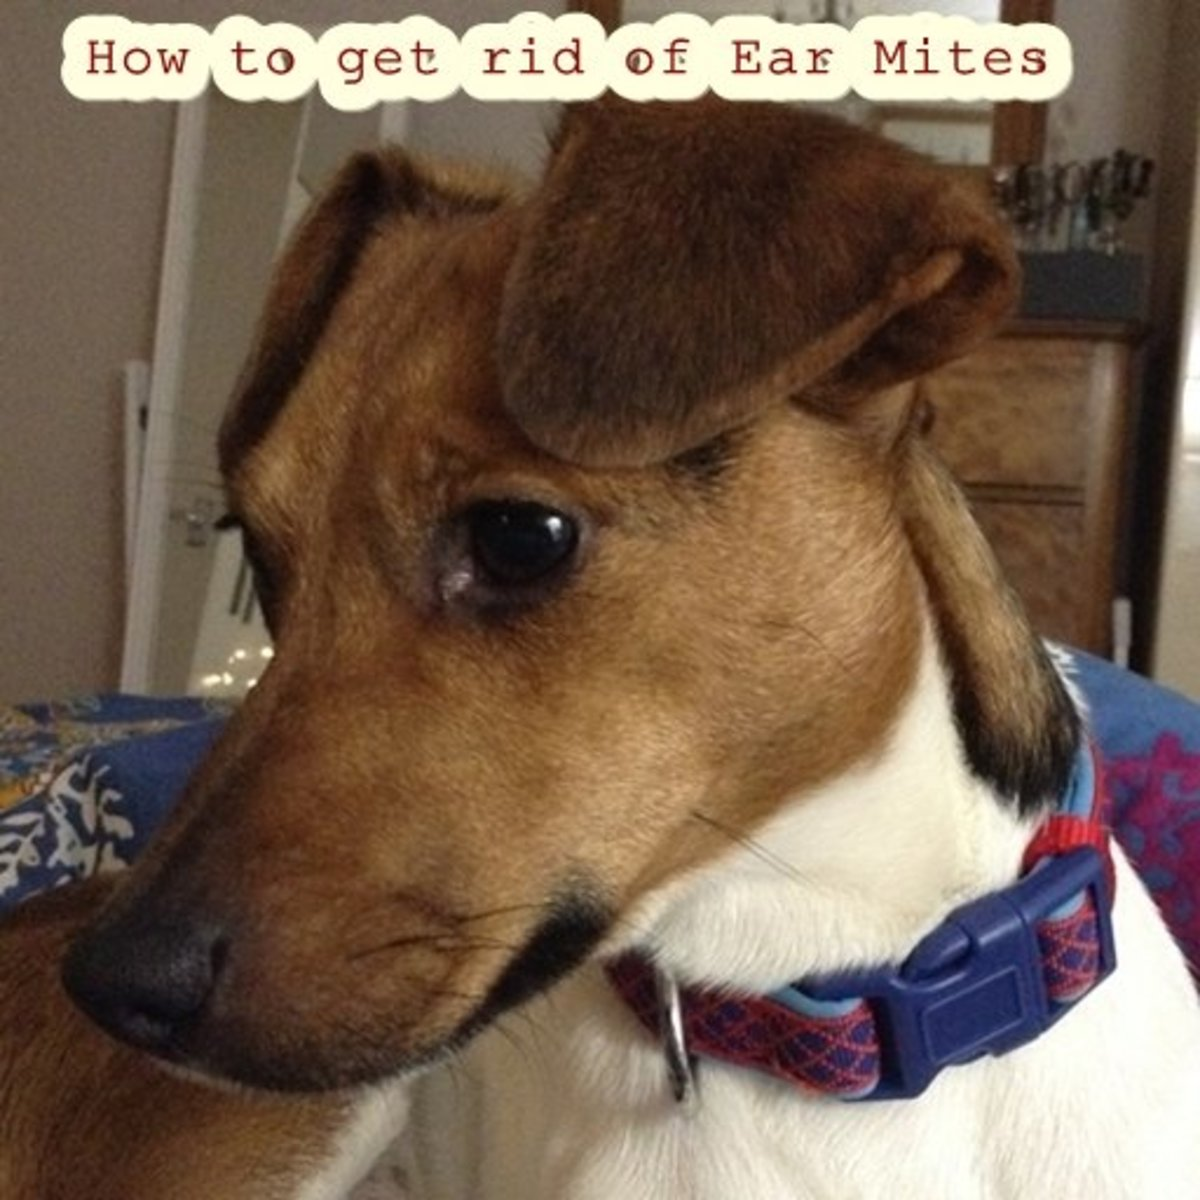 how-to-get-rid-of-ear-mites